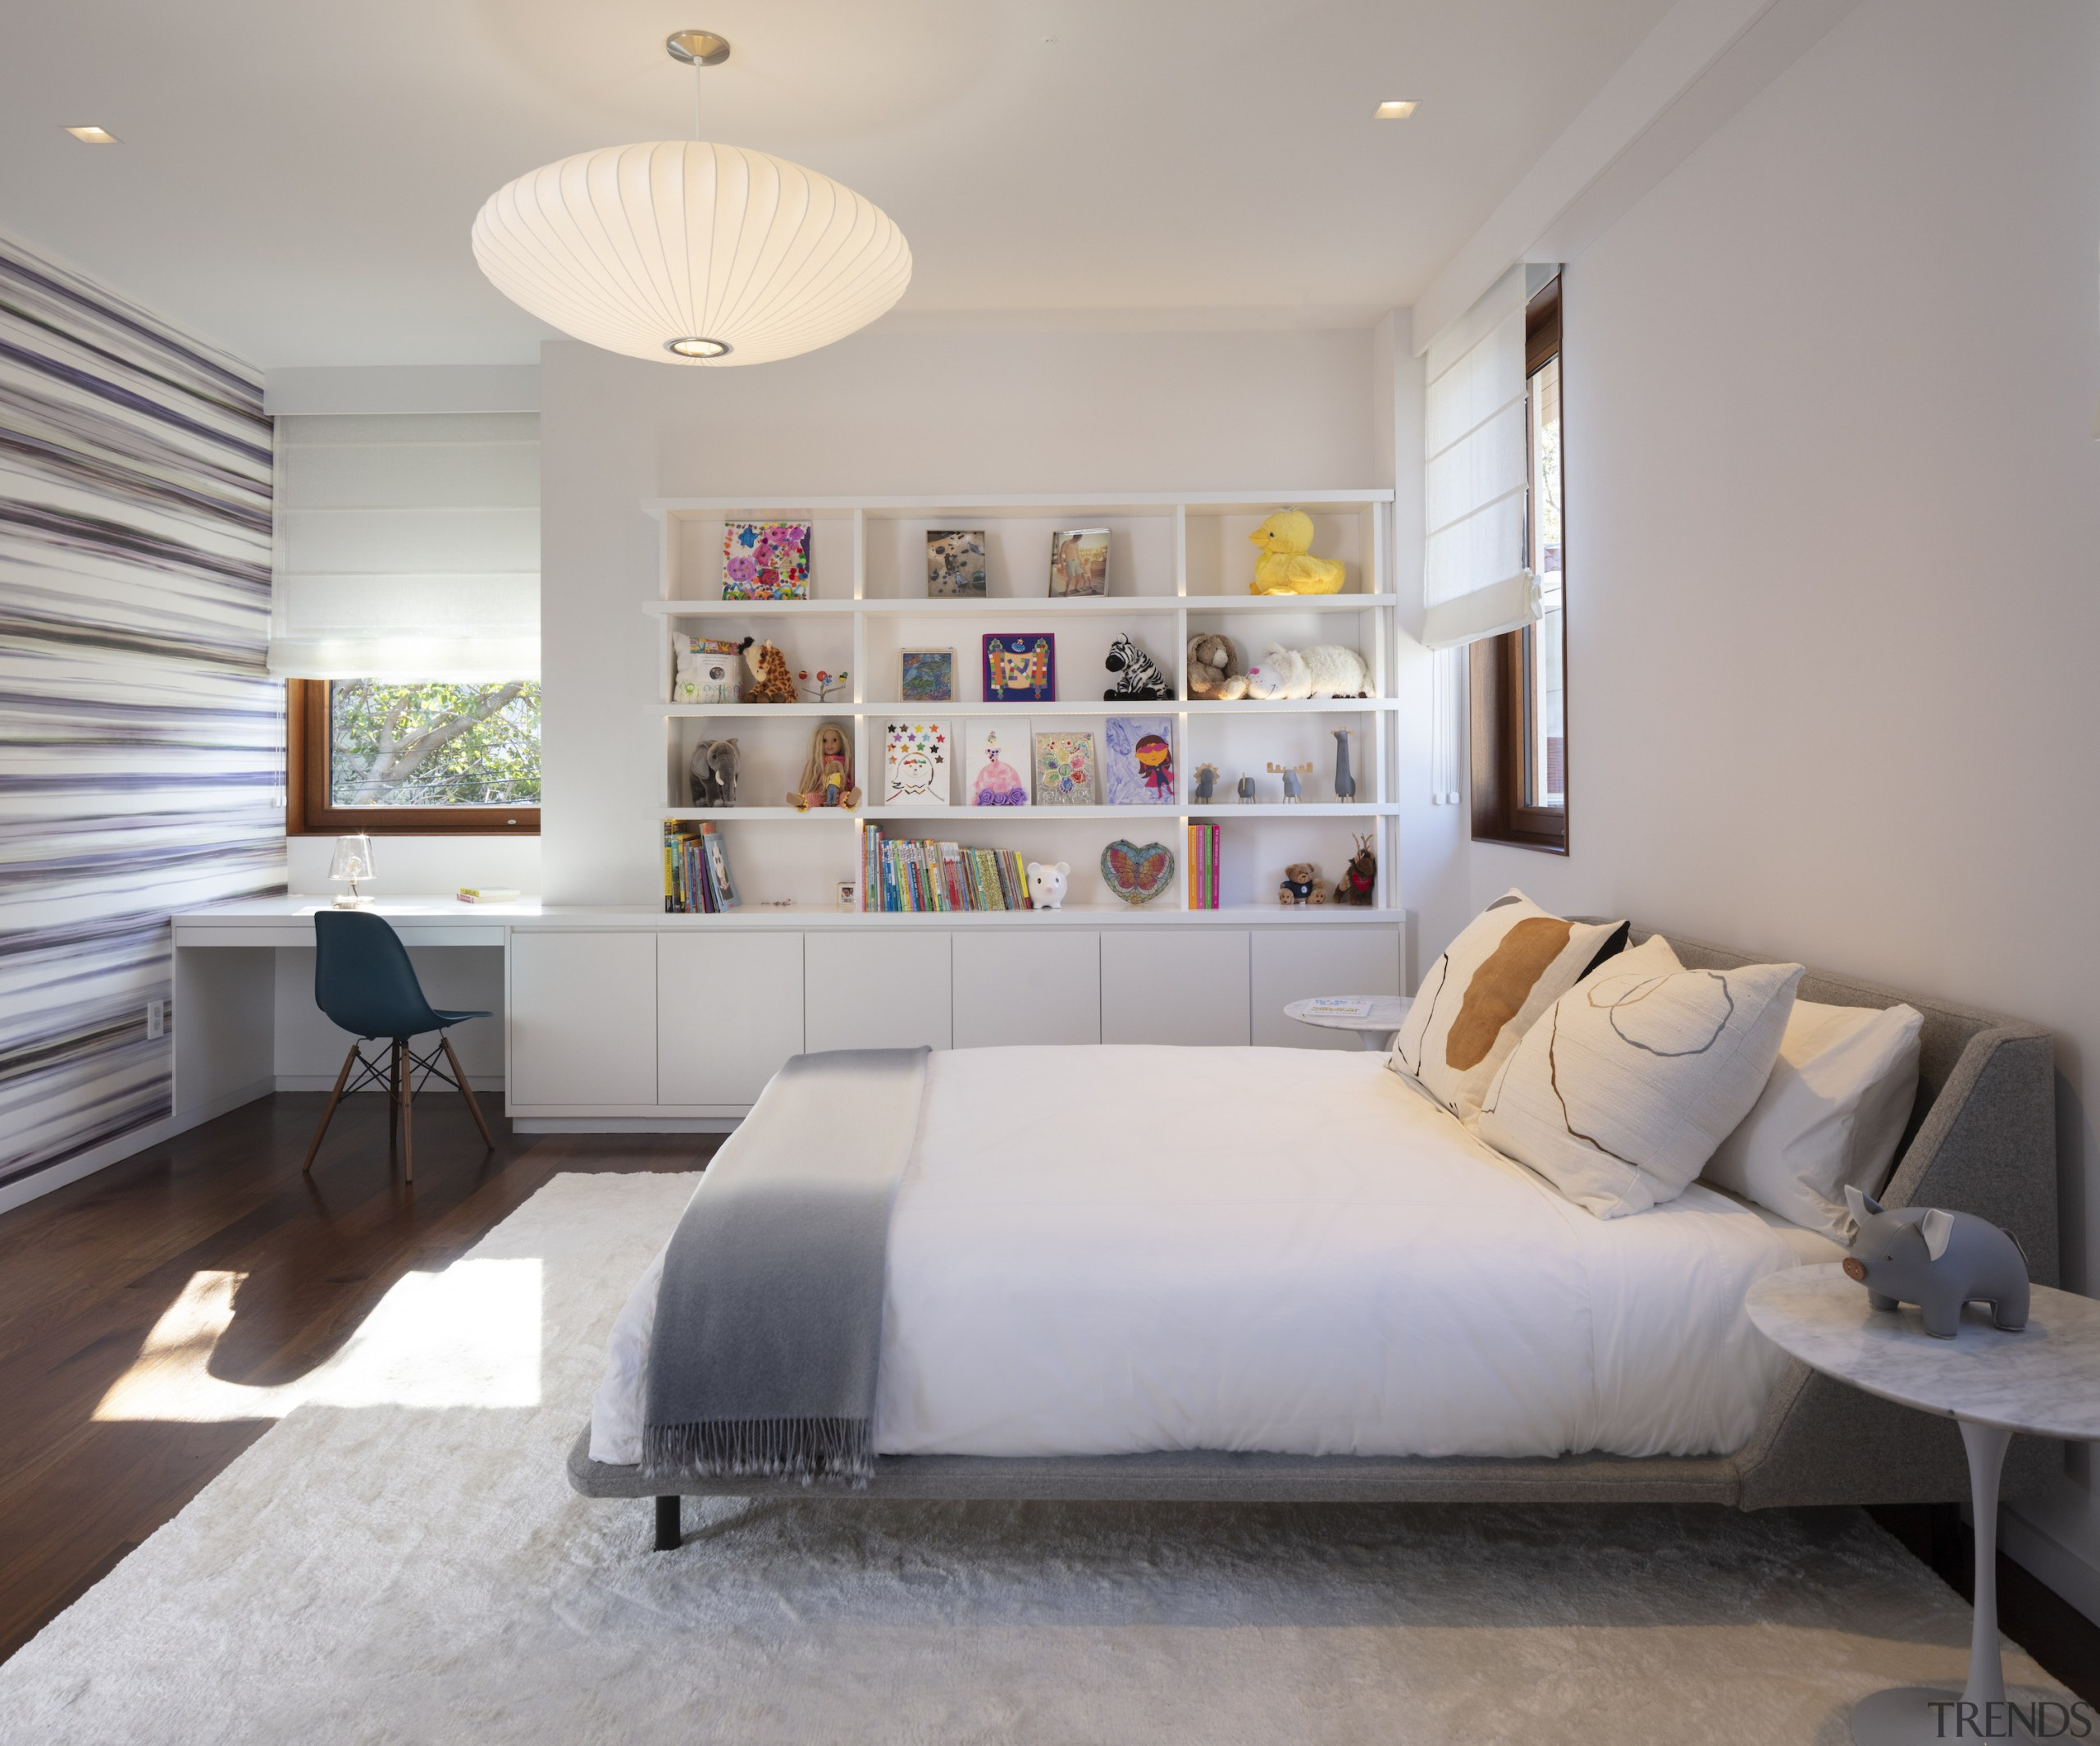 This child's bedroom includes built-in display shelving and